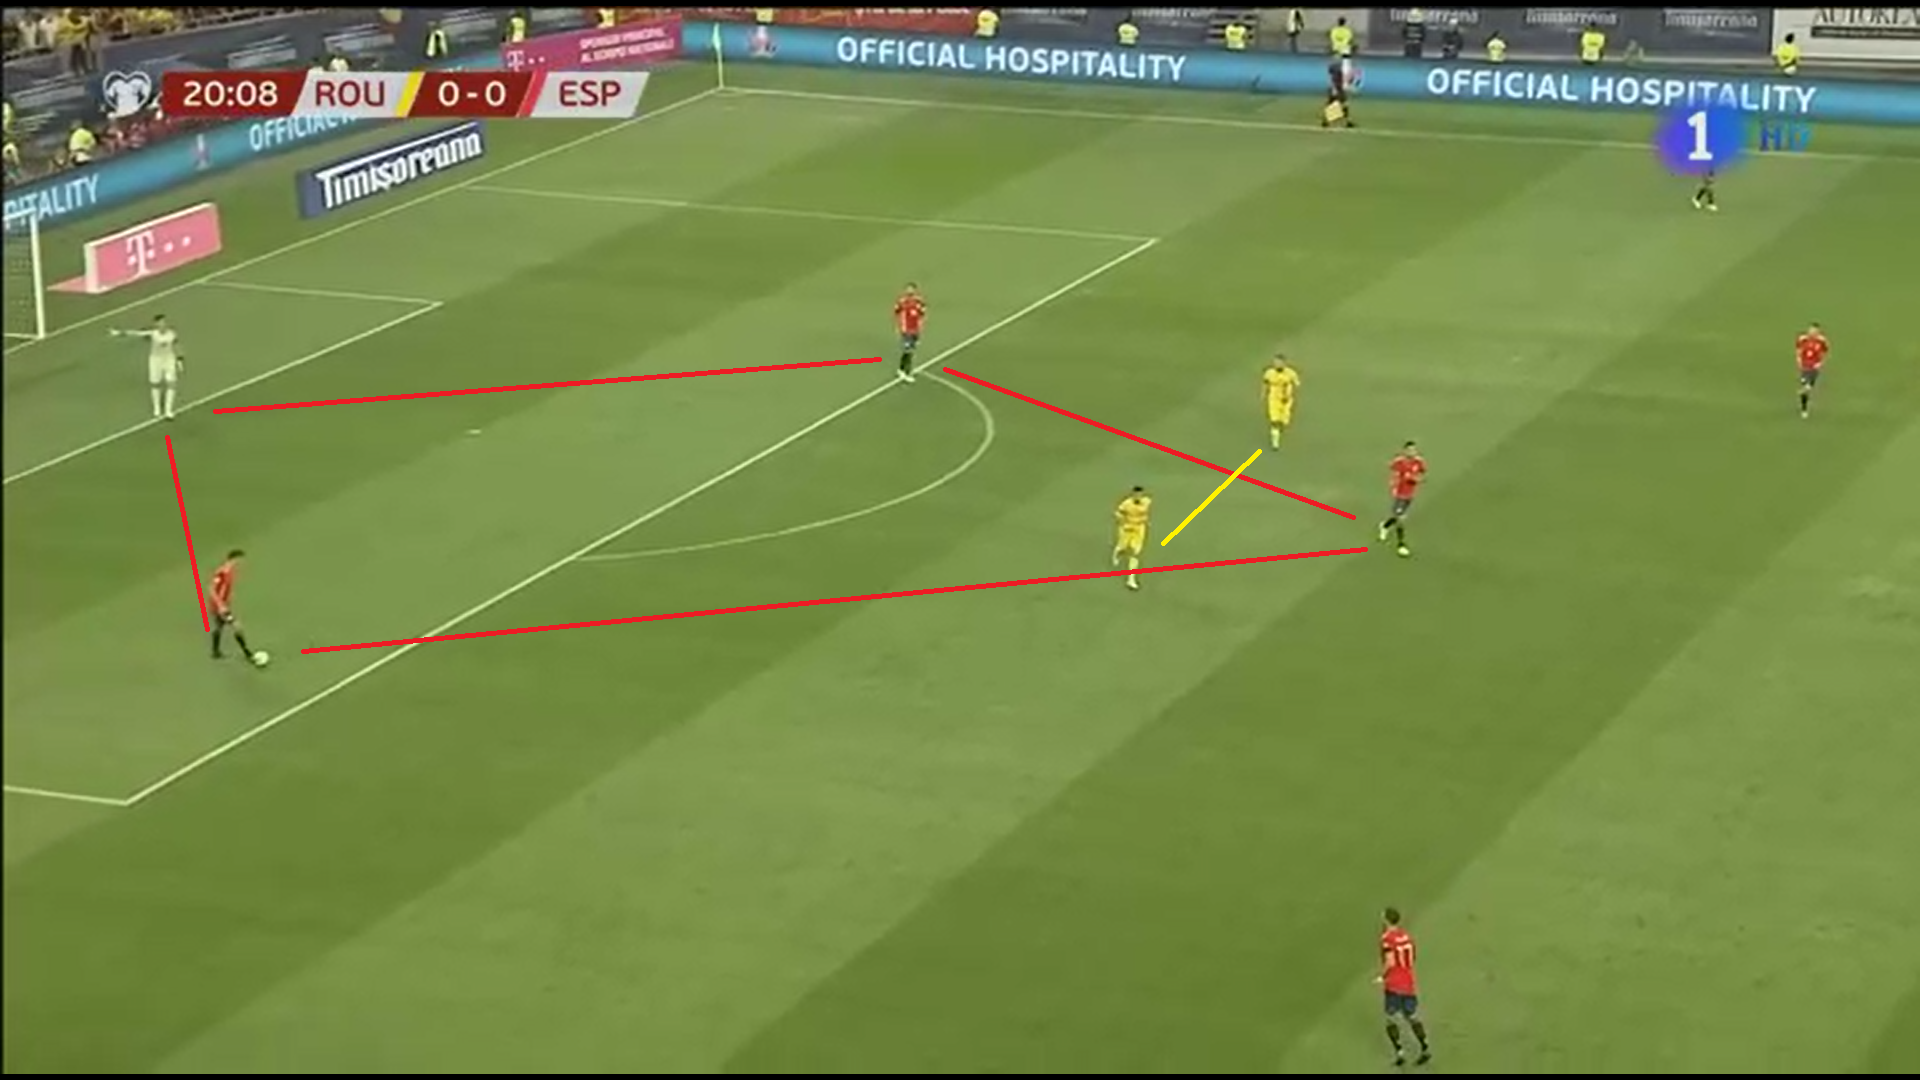 Euro 2020 Qualifiers: Romania vs Spain - Tactical Analysis